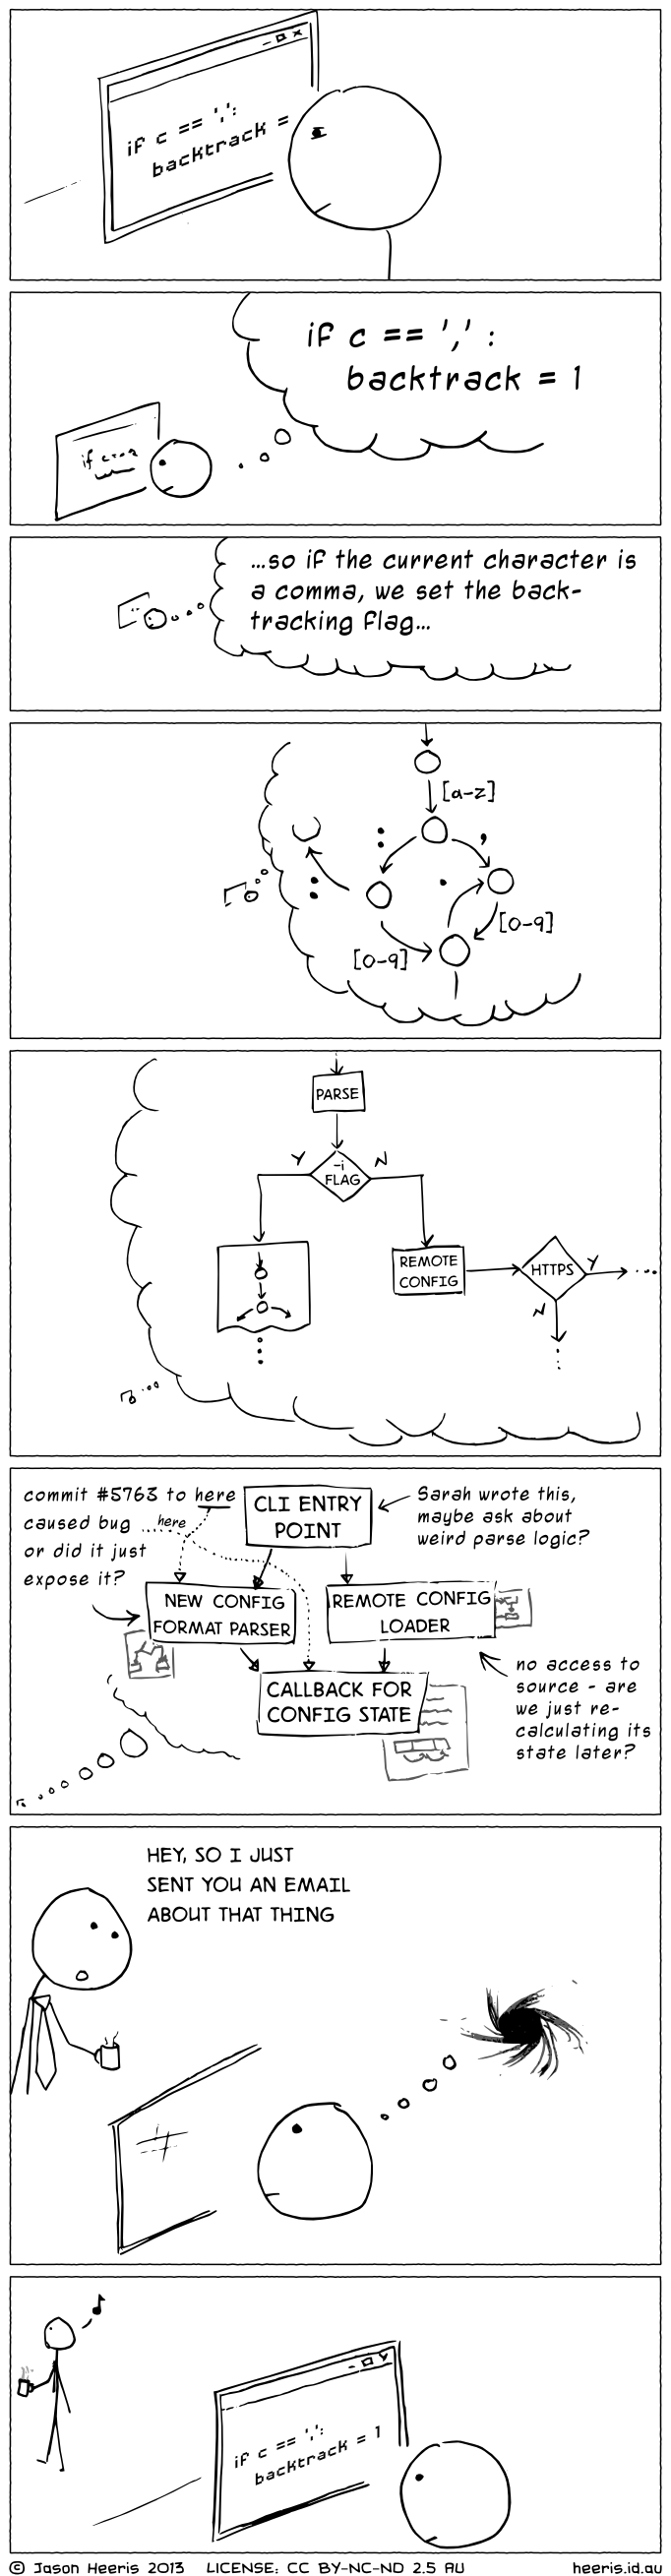 What happens inside the mind of a developer who has been distracted